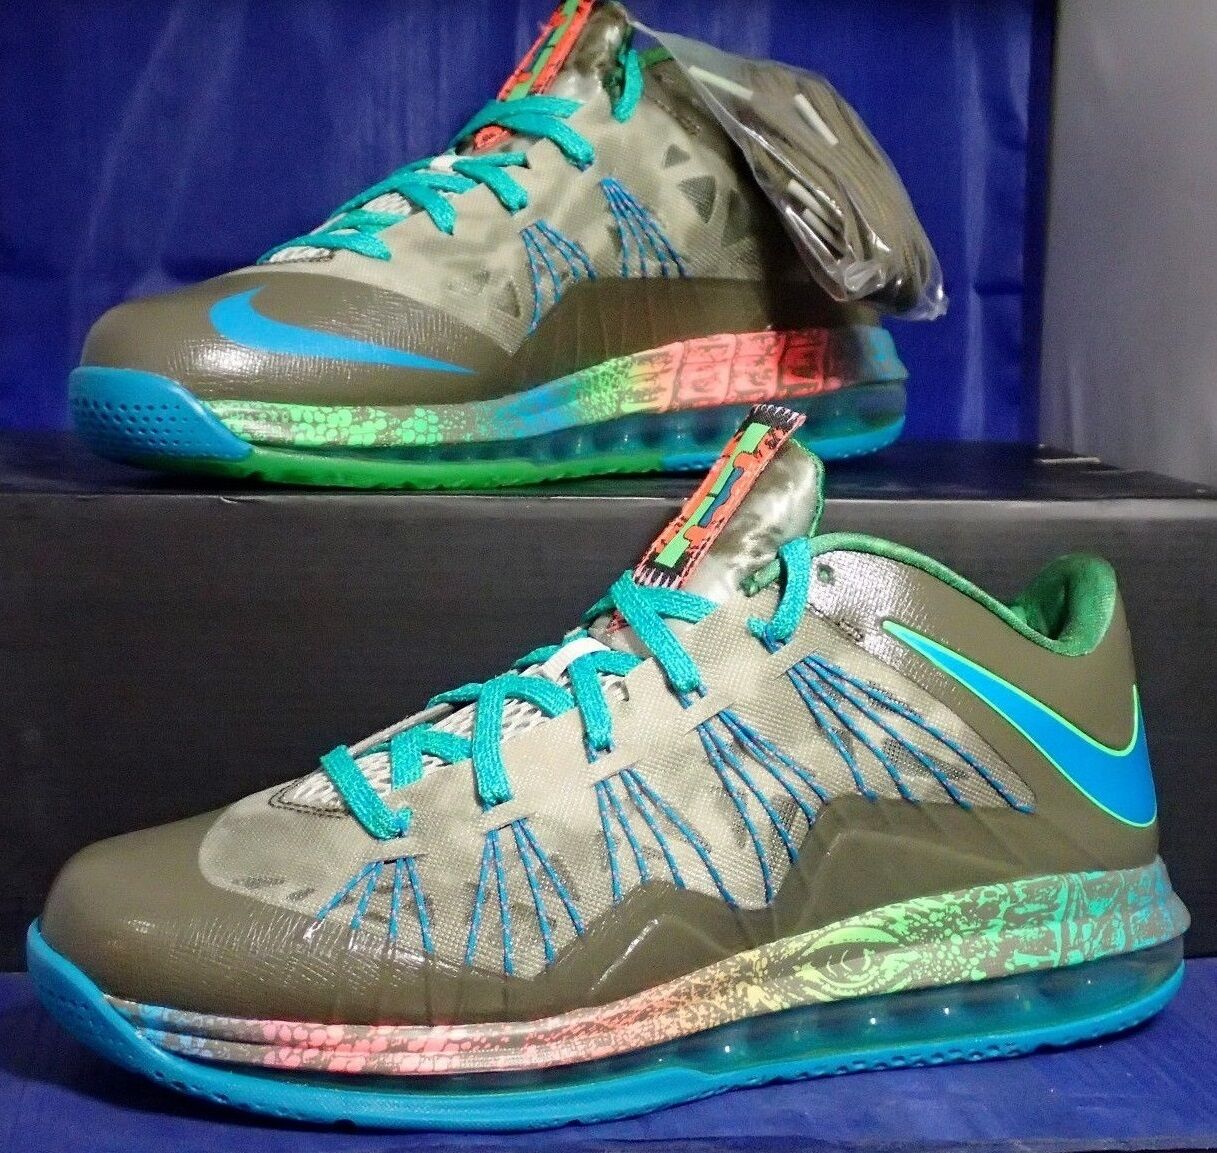 Nike Air Max Lebron X 10 Low SWAMP THING 11.5 US Reptile Cork South Beach Sample